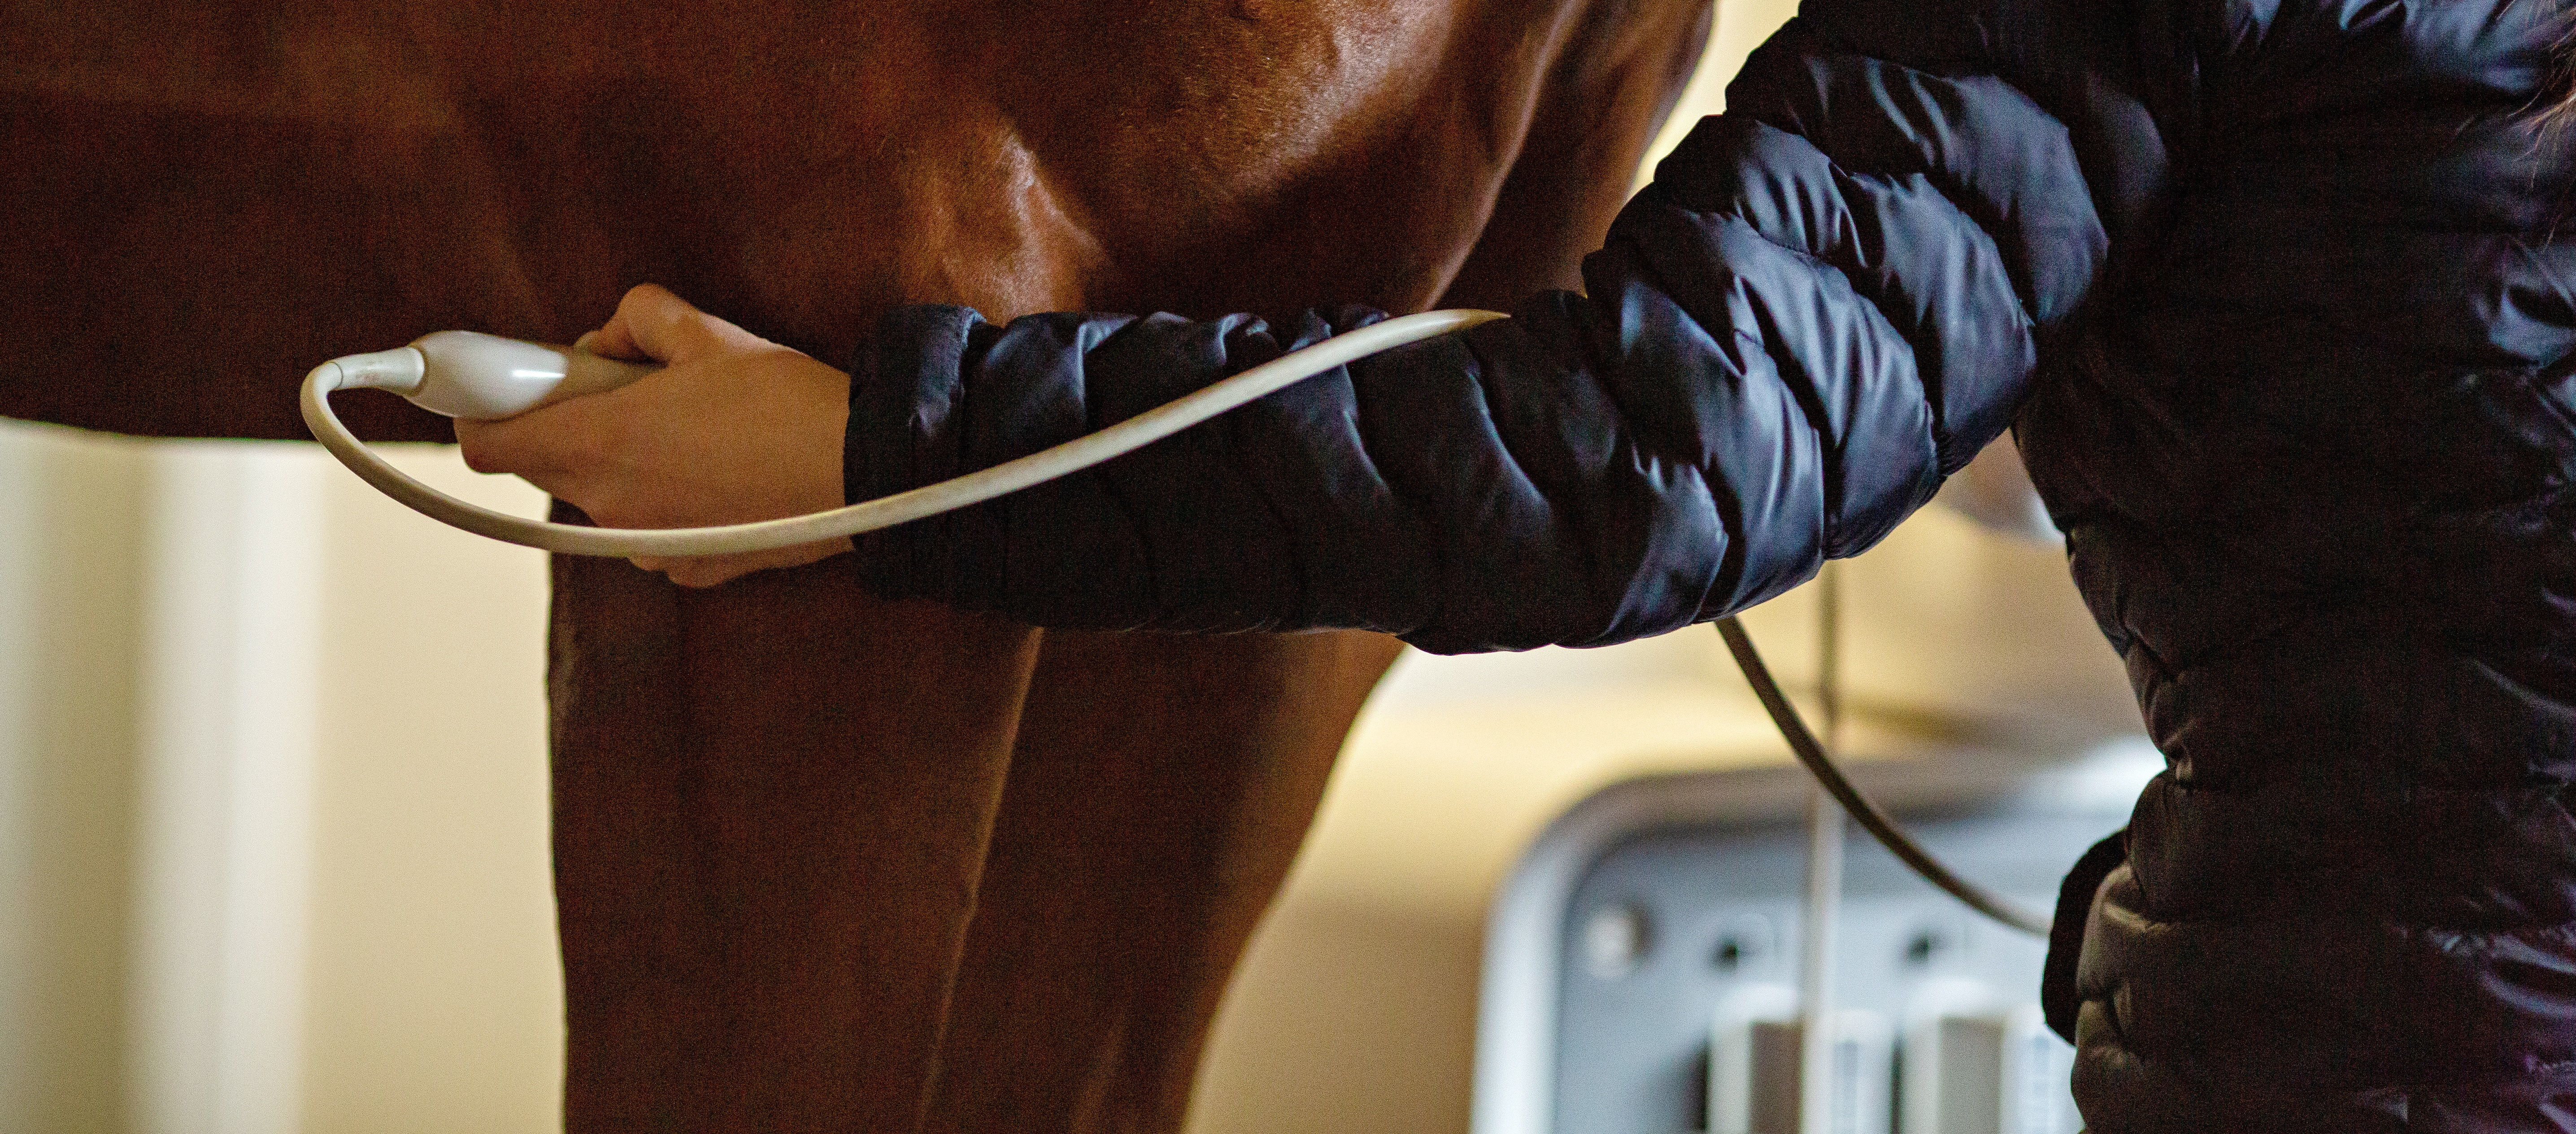 ultrasound - radiology equipment for equine health